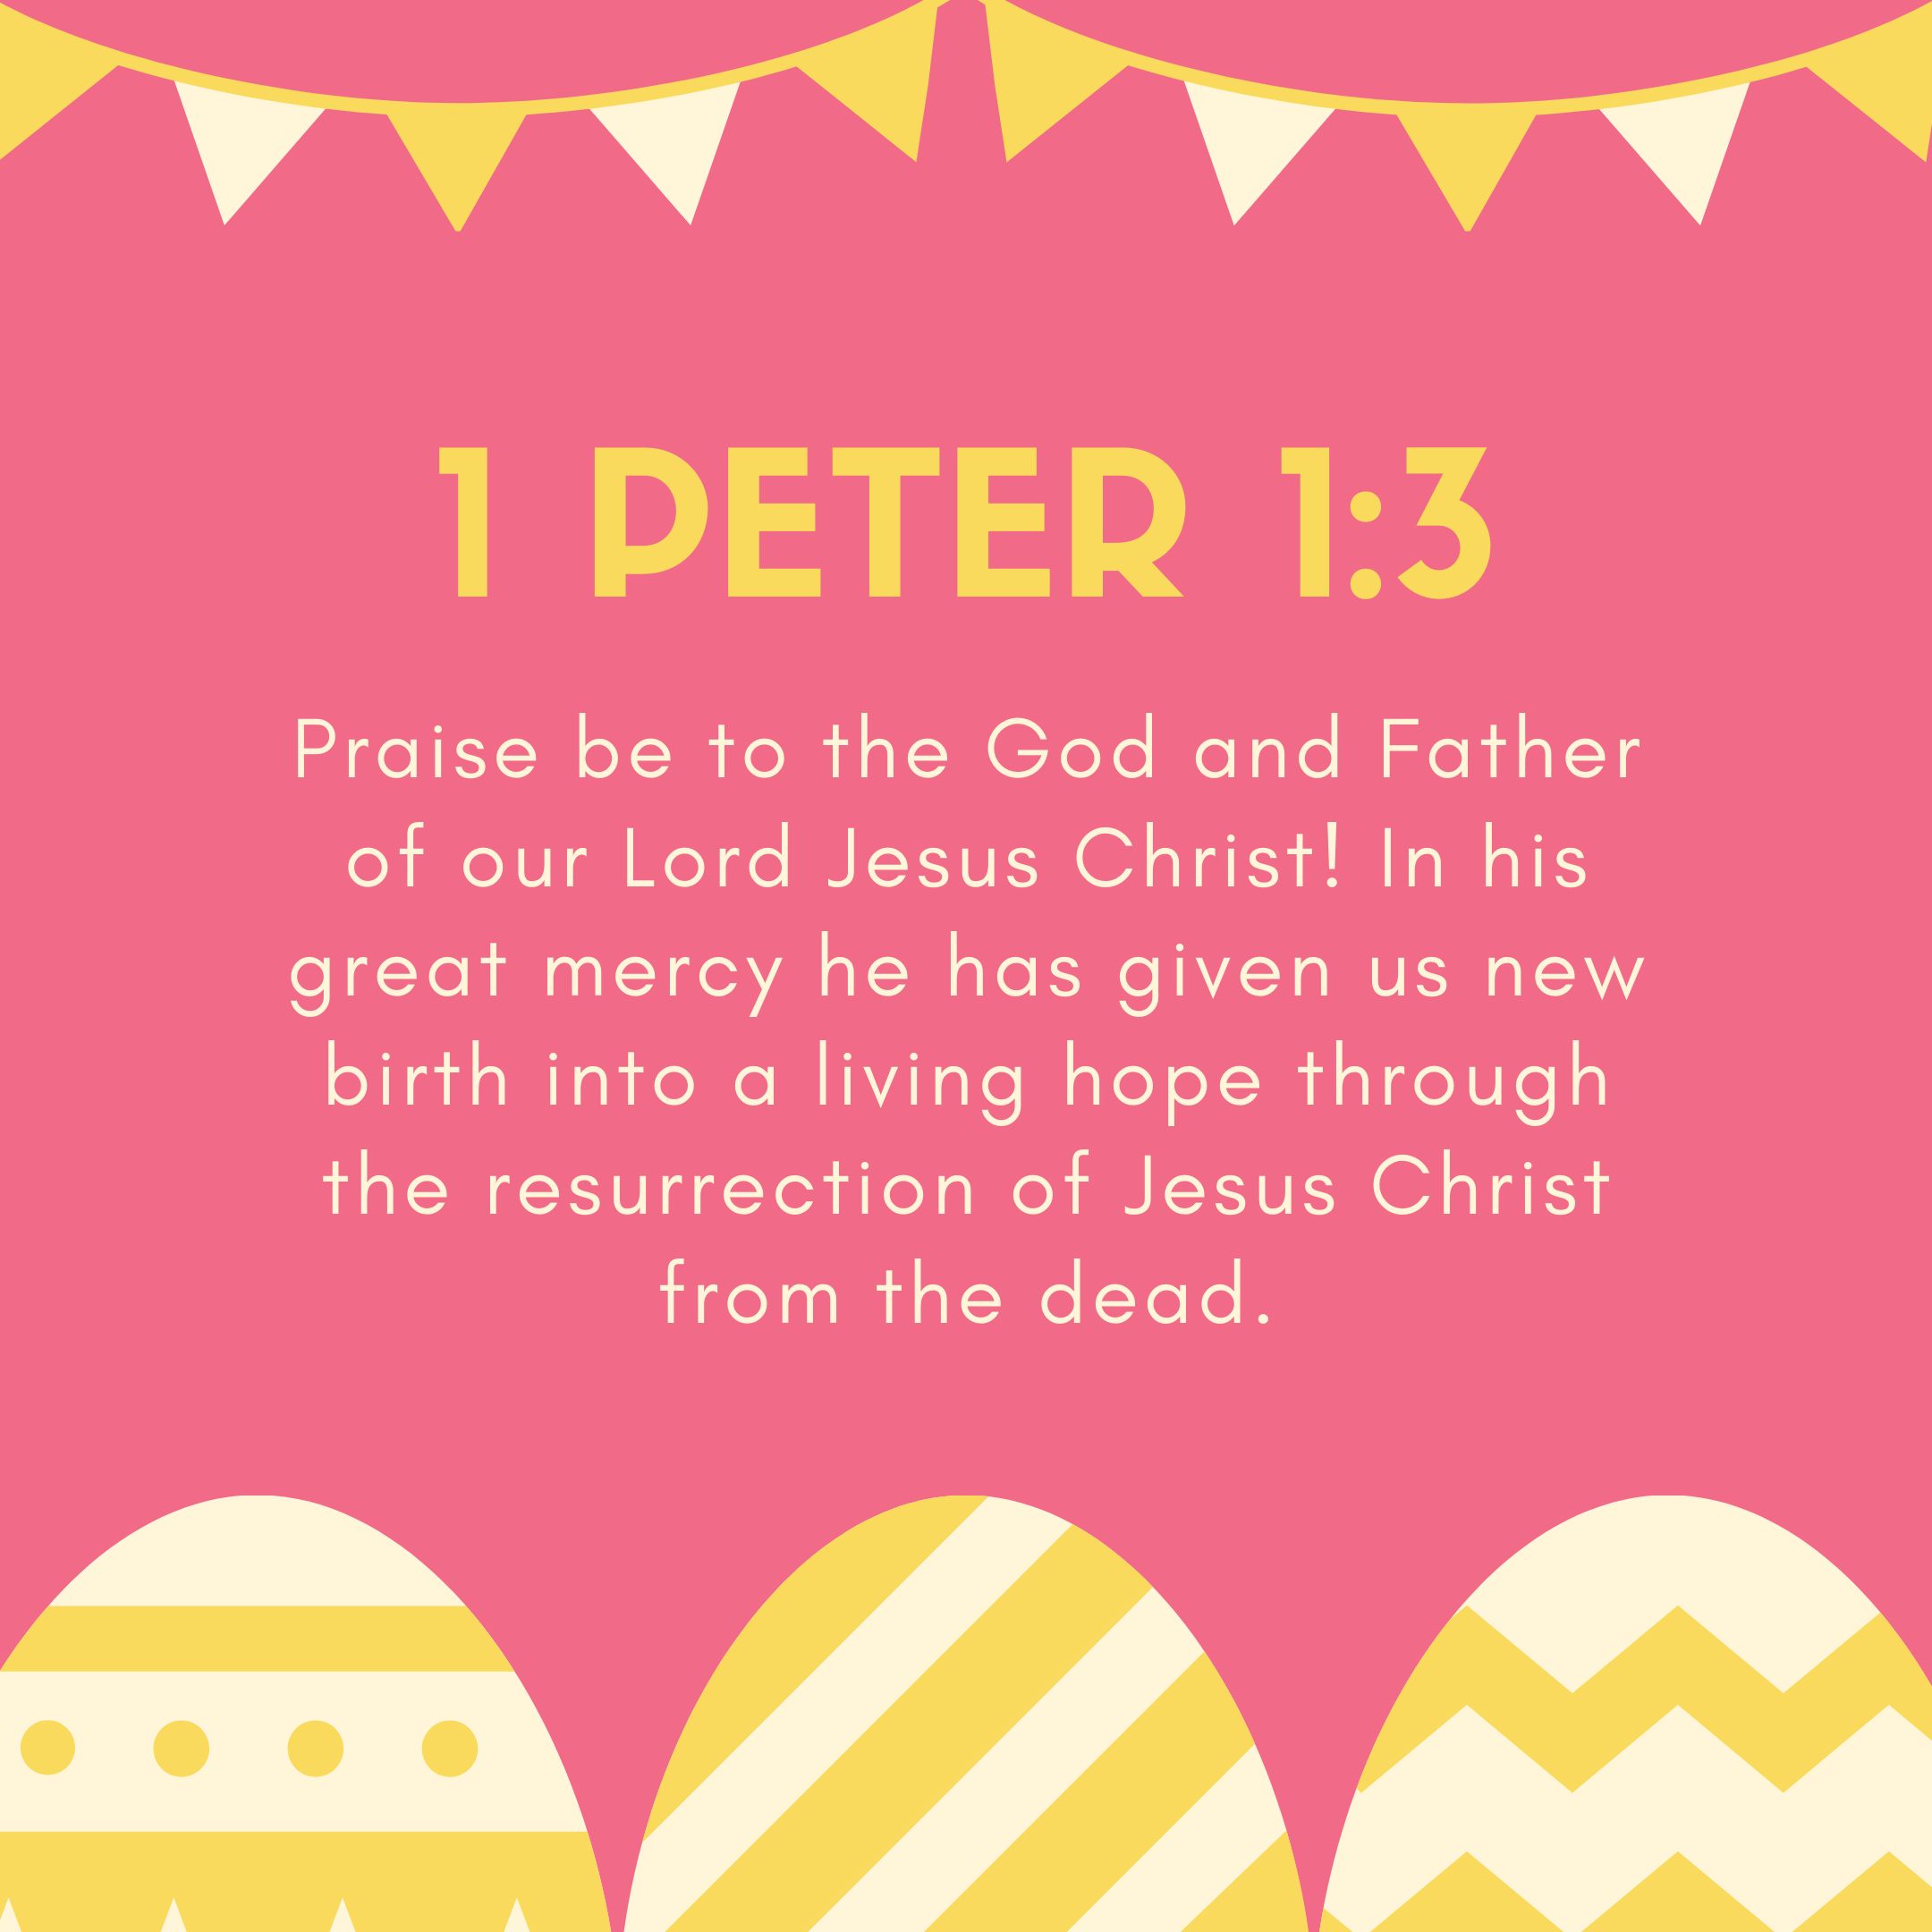 1 Peter 1:3 Praise be to the God and Father of our Lord Jesus Christ! In his great mercy he has given us new birth into a living hope through the resurrection of Jesus Christ from the dead.